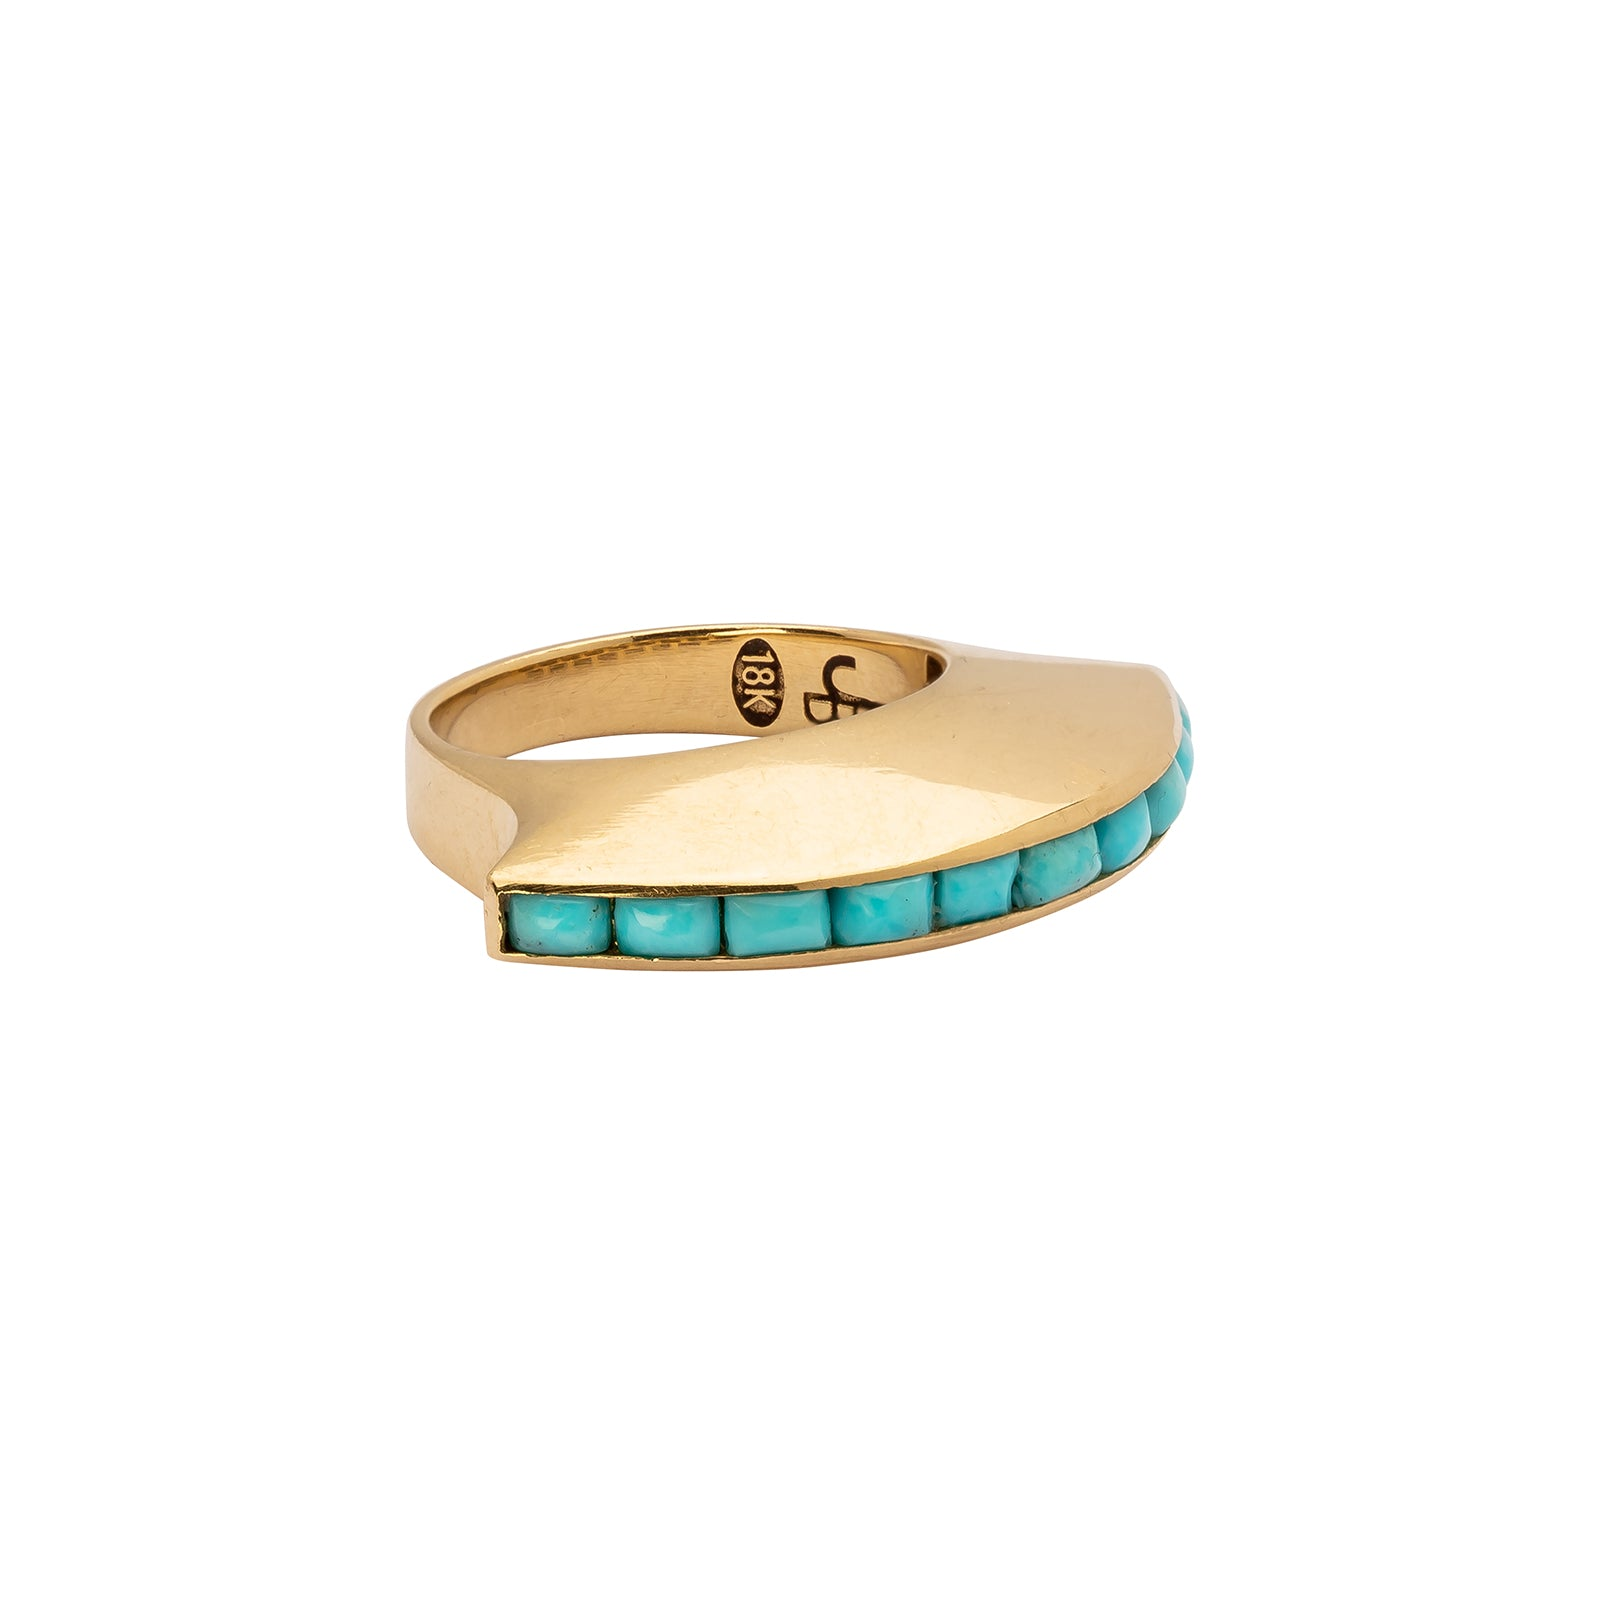 Jenna Blake Eclipse Ring - Turquoise - Rings - Broken English Jewelry